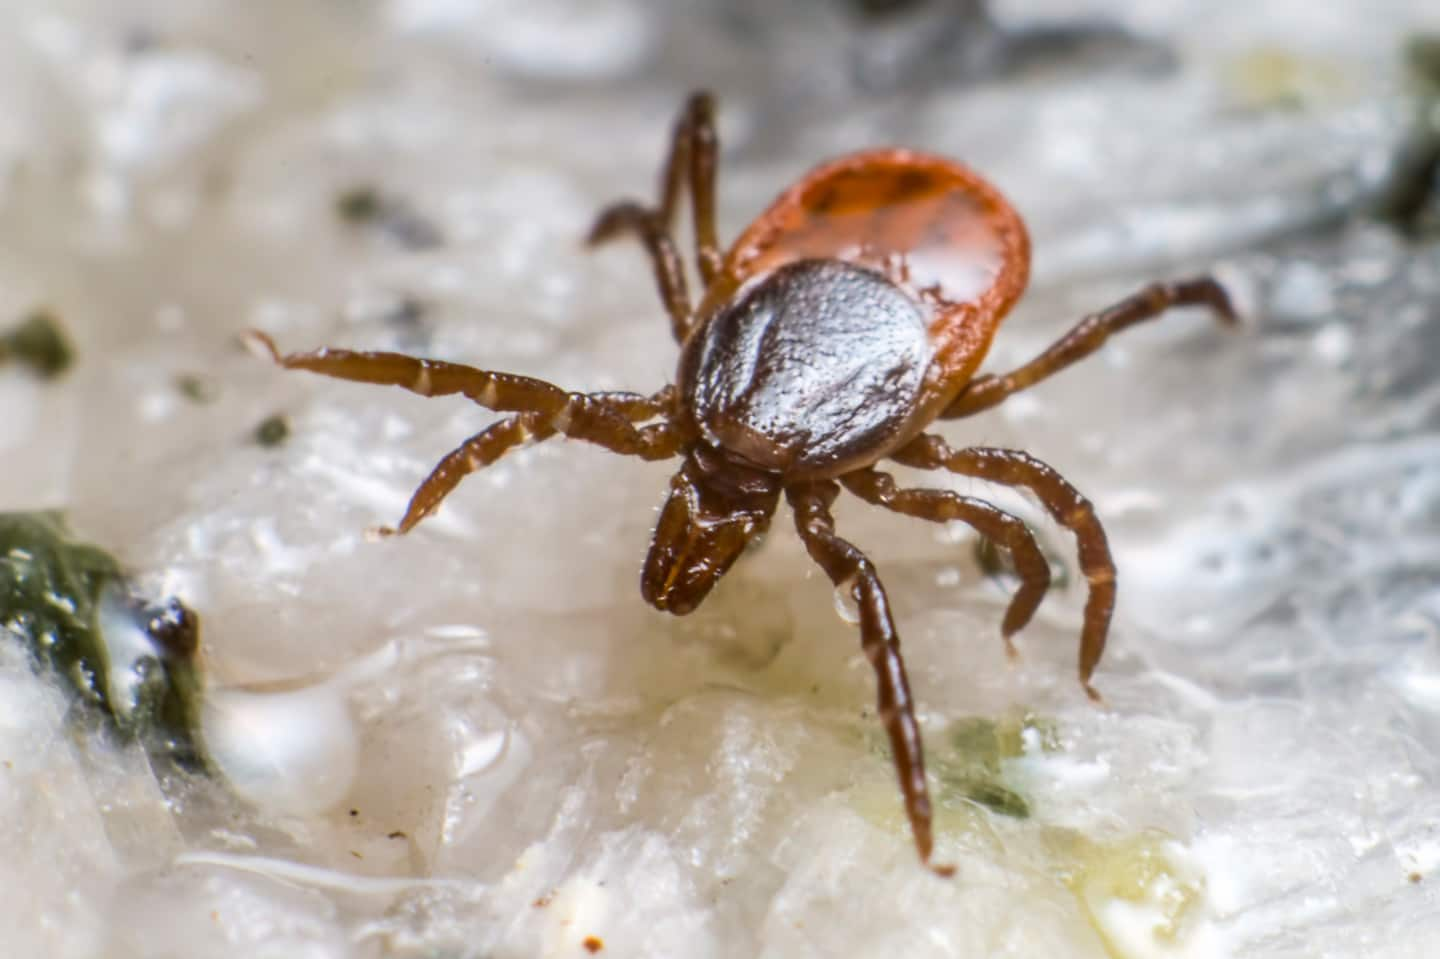 Ticks often travel to urban areas on mice and white-tailed deer, then settle near homes and businesses with landscape features conducive to harboring ticks and their hosts. (Photo courtesy of American Pest)